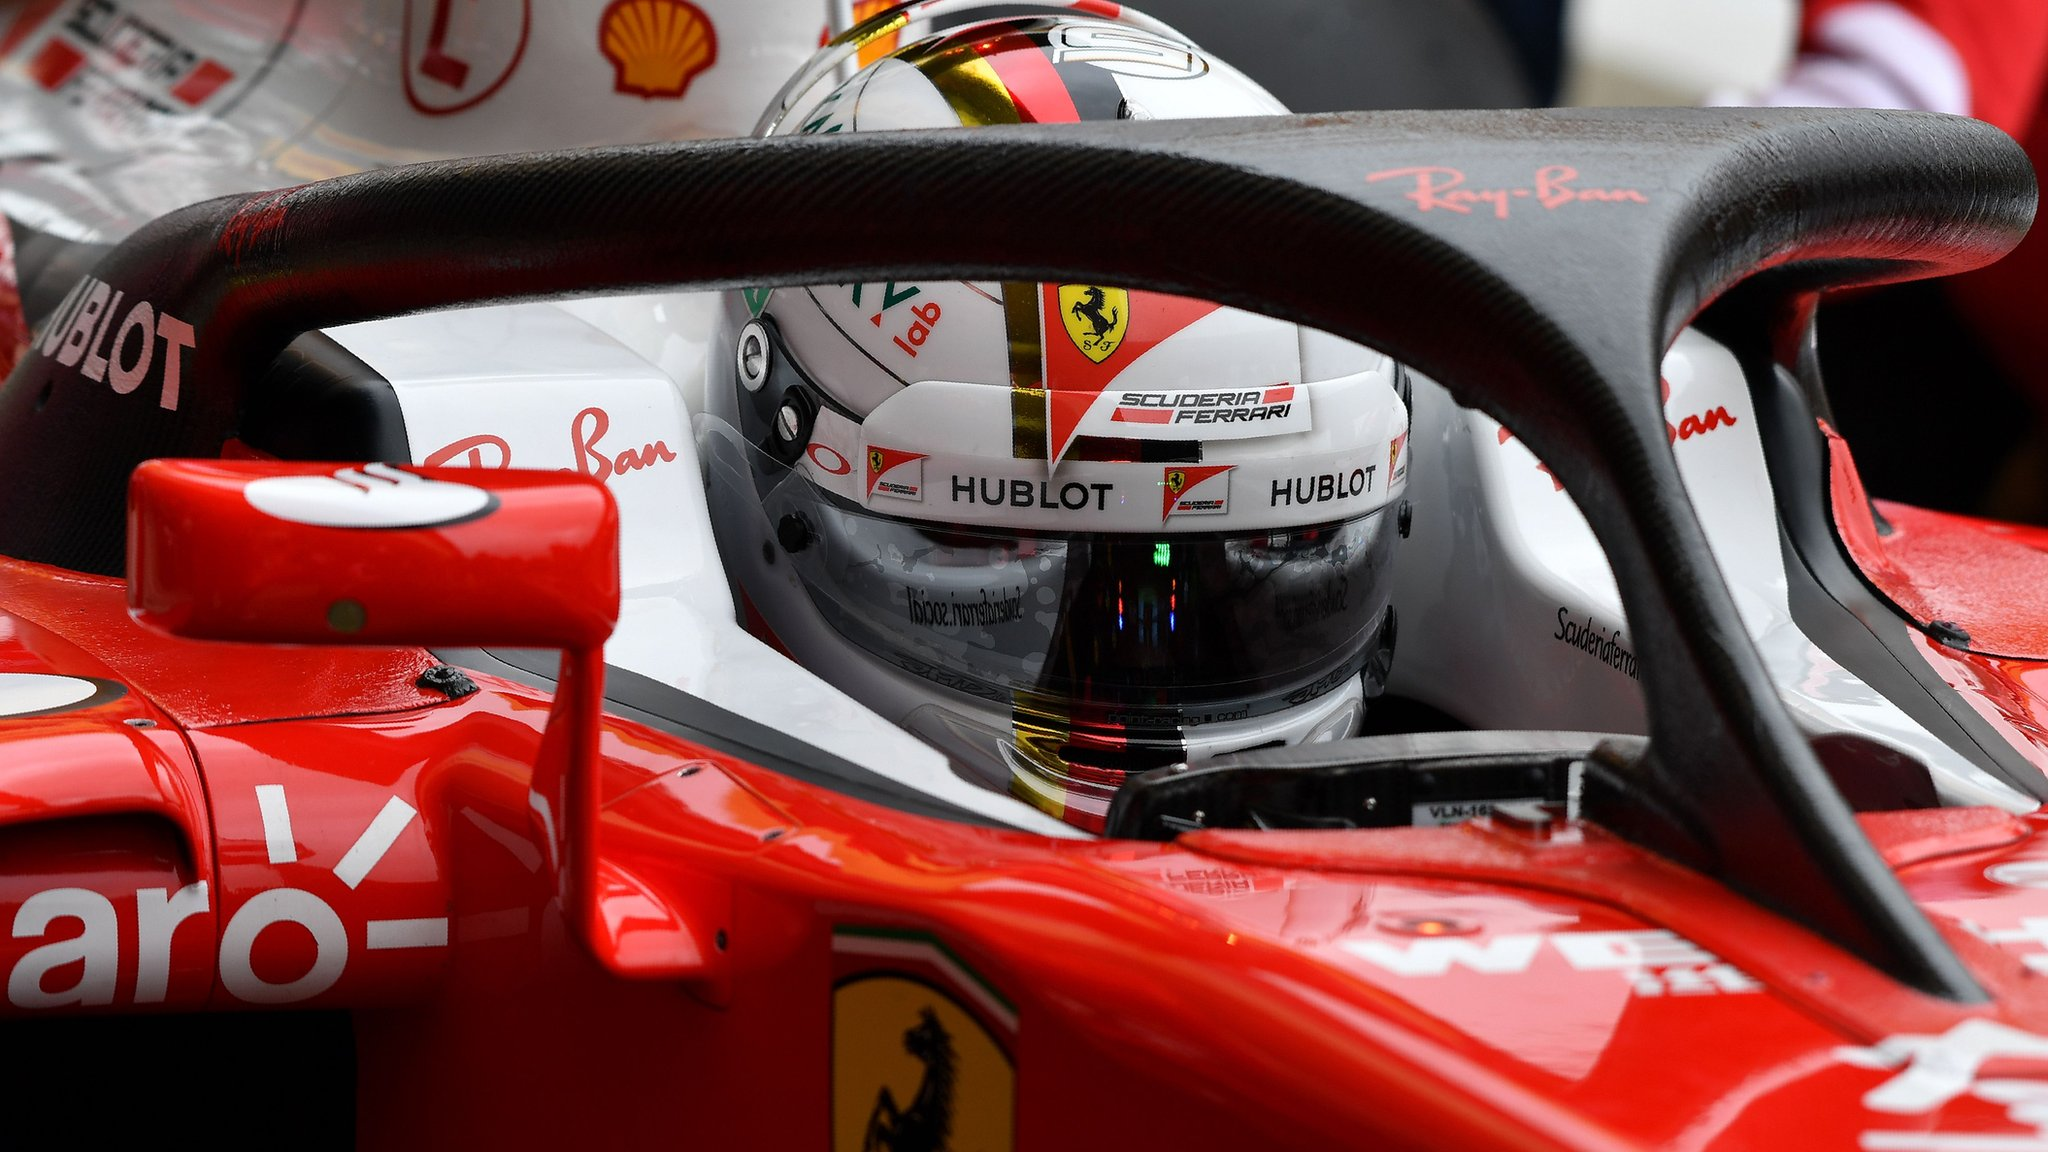 Formula 1 halo: Will sport put safety before style?